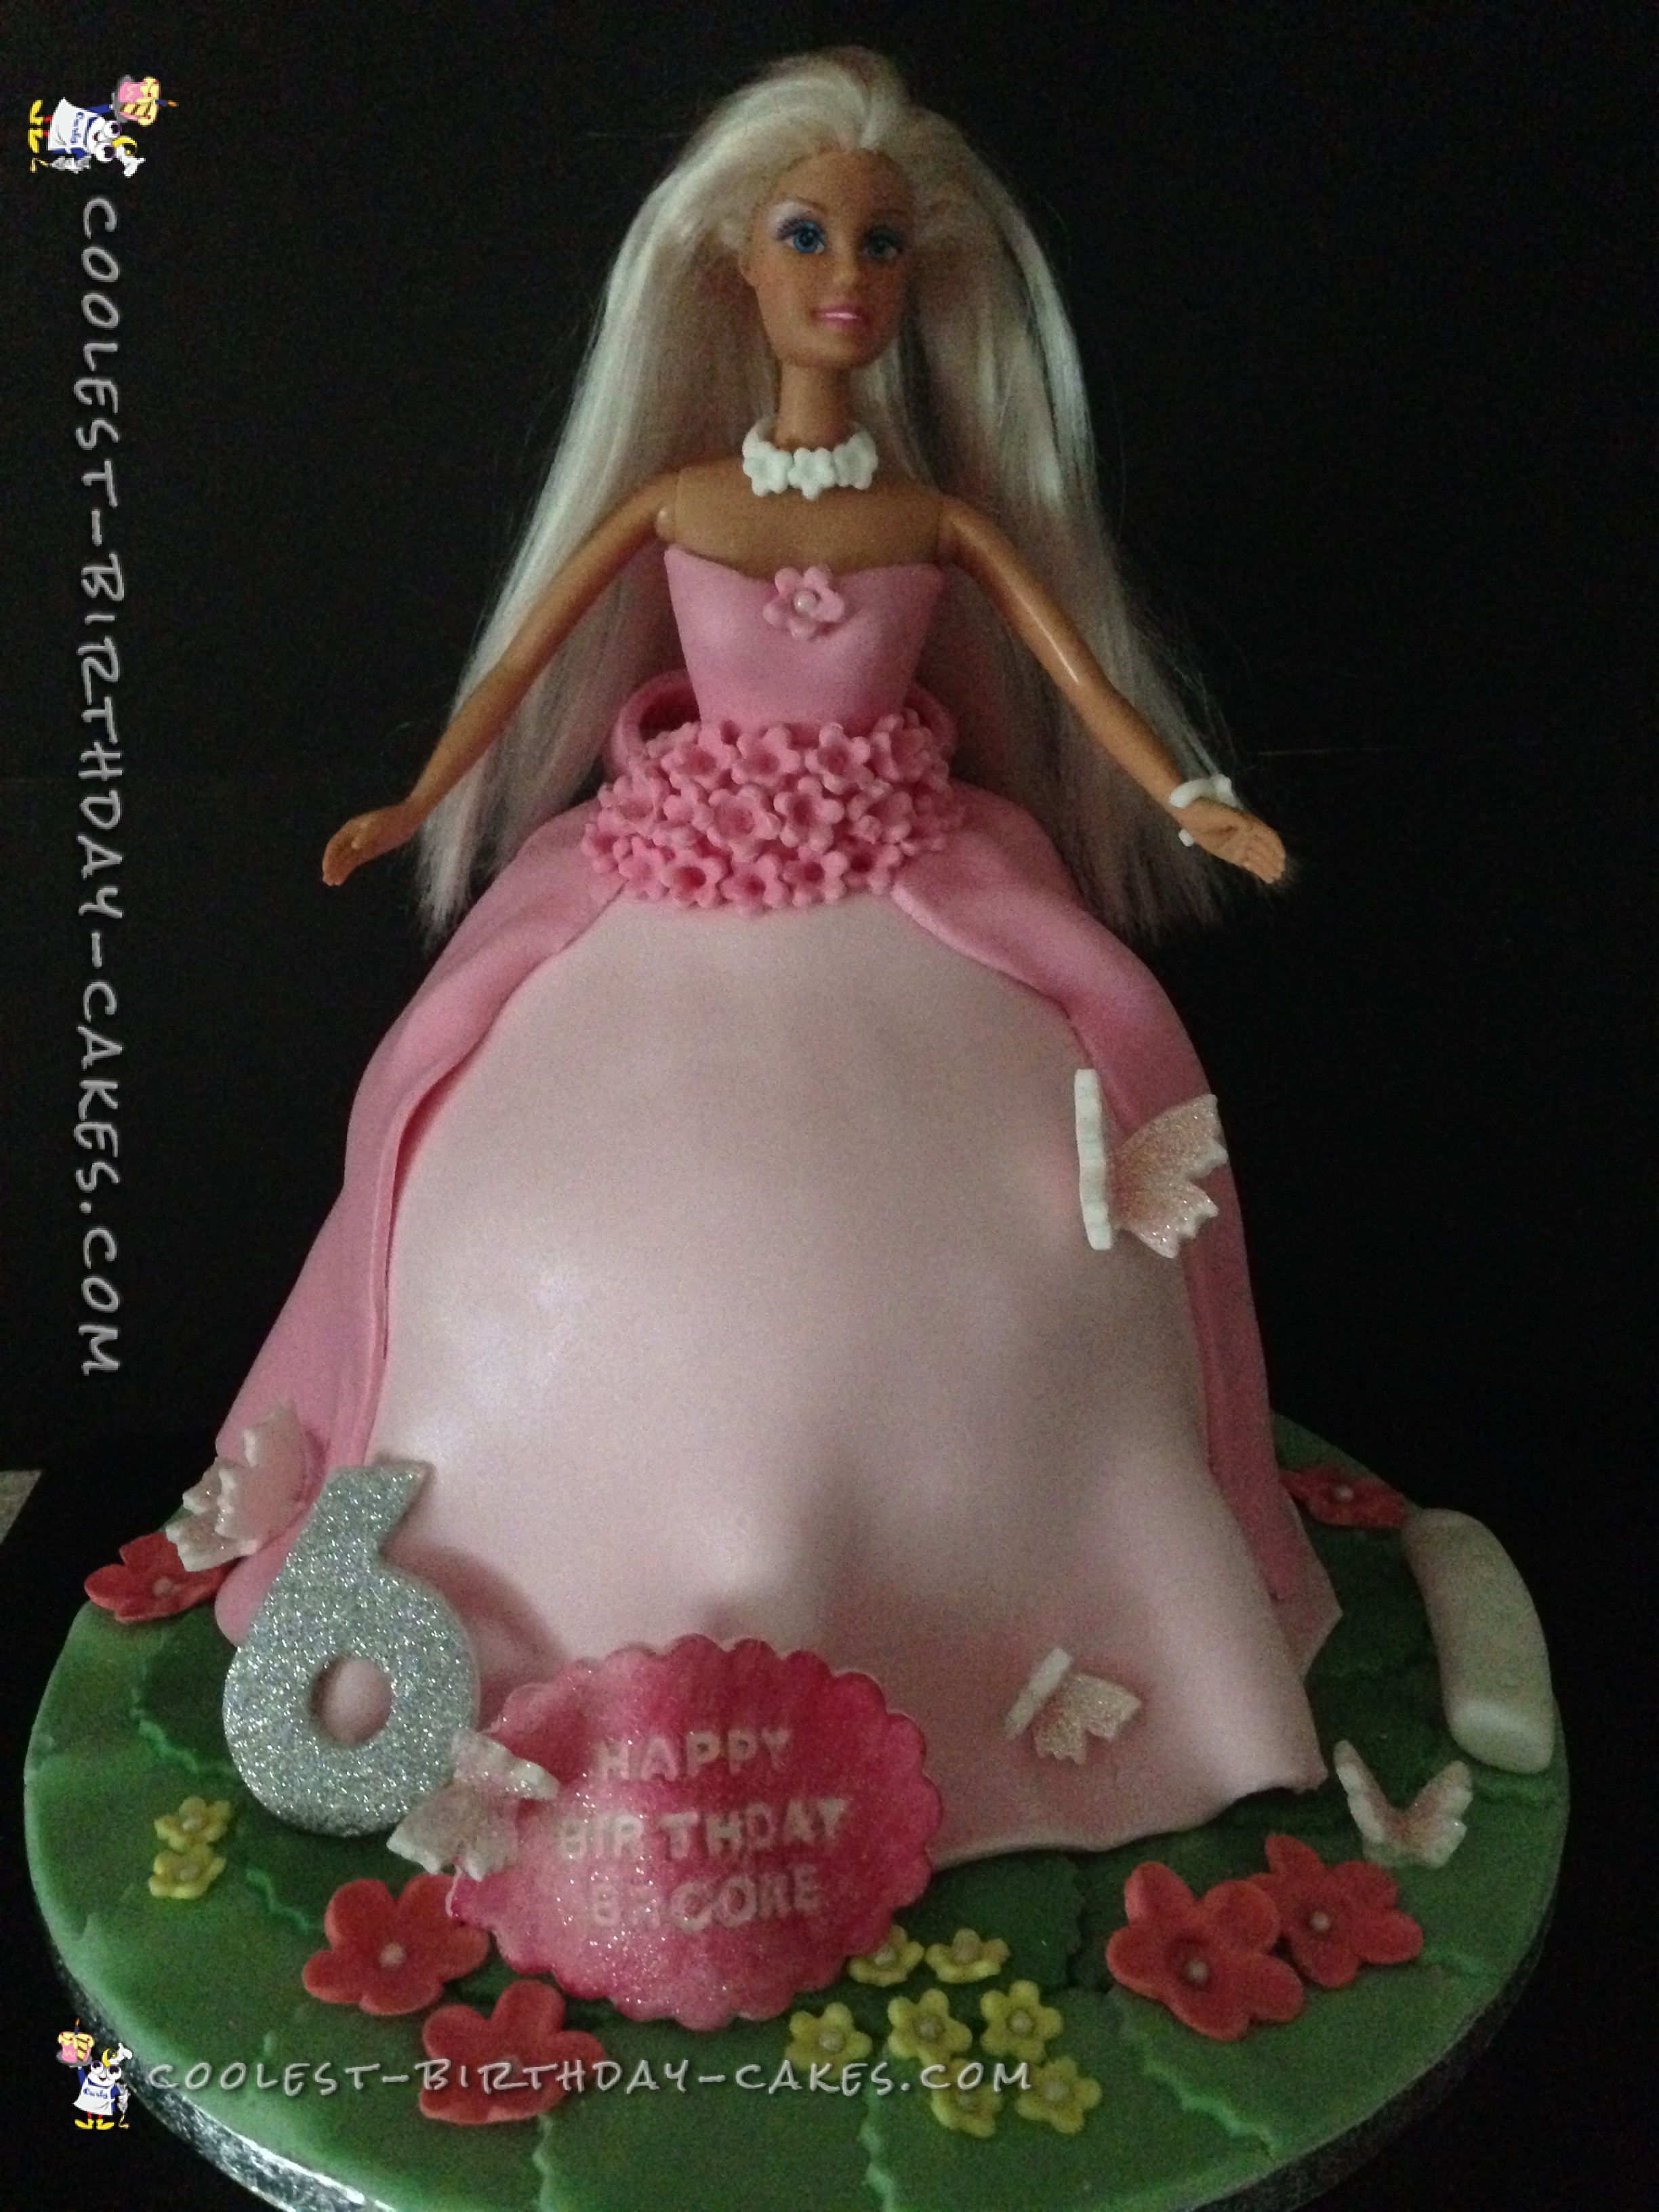 Coolest DIY Barbie Cake